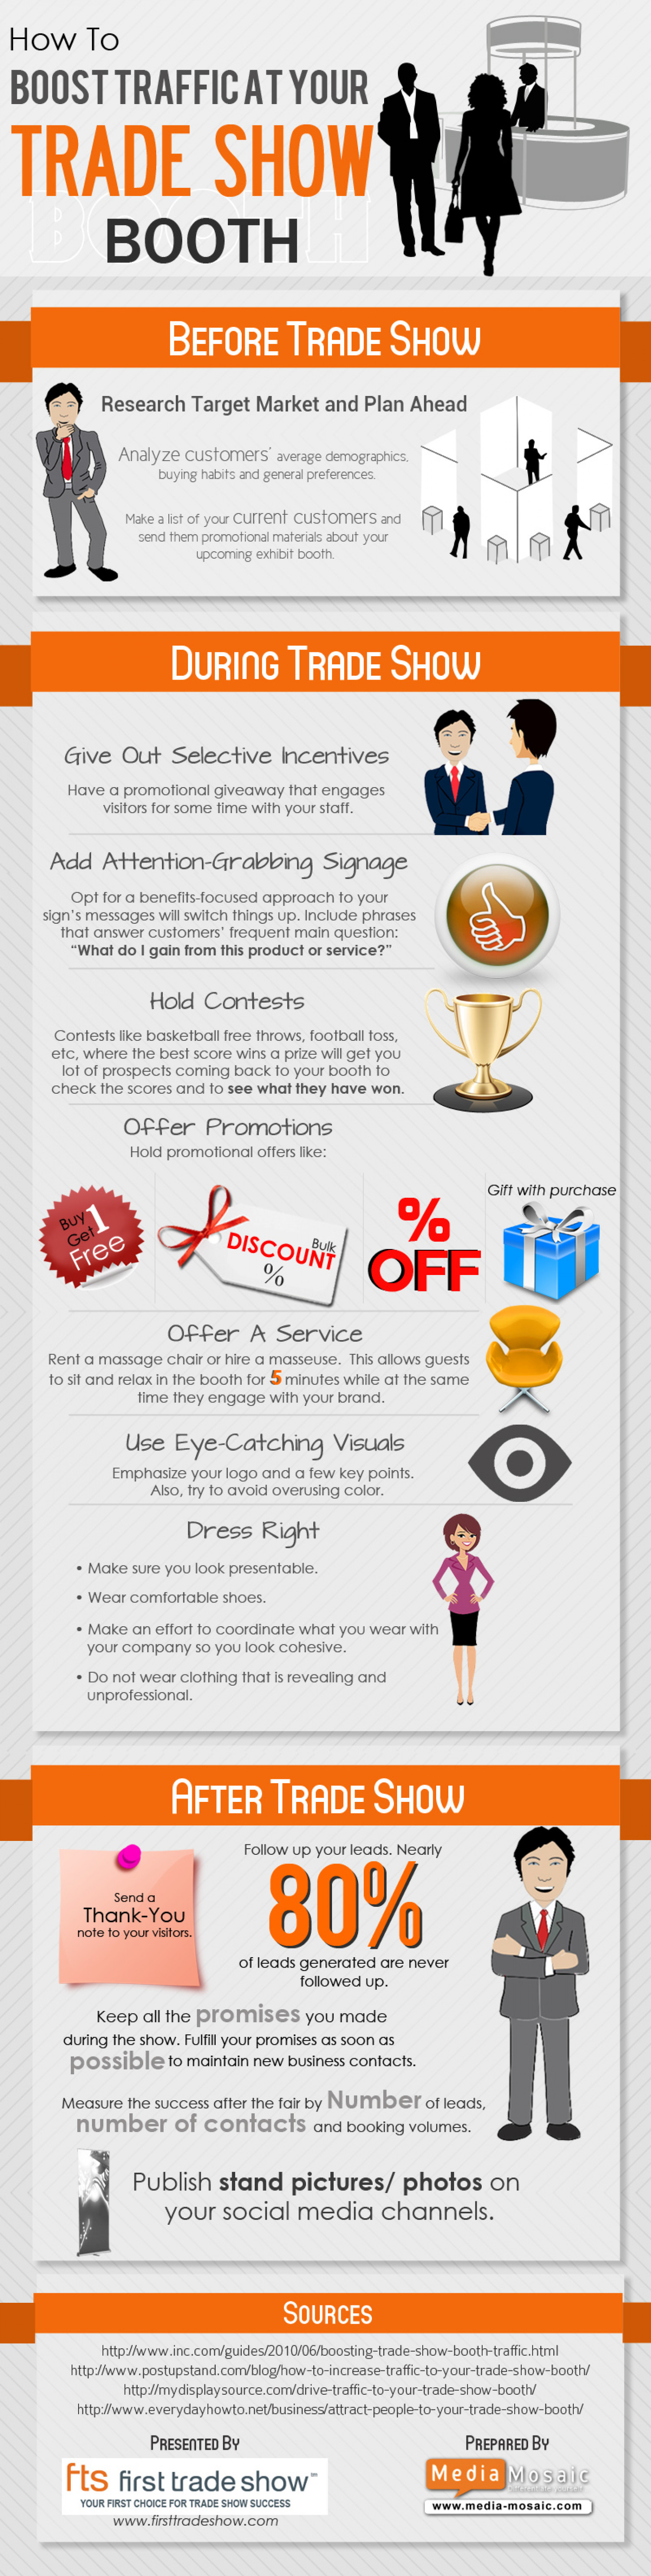 How to Boost Traffic at Your Trade Show Booth Infographic